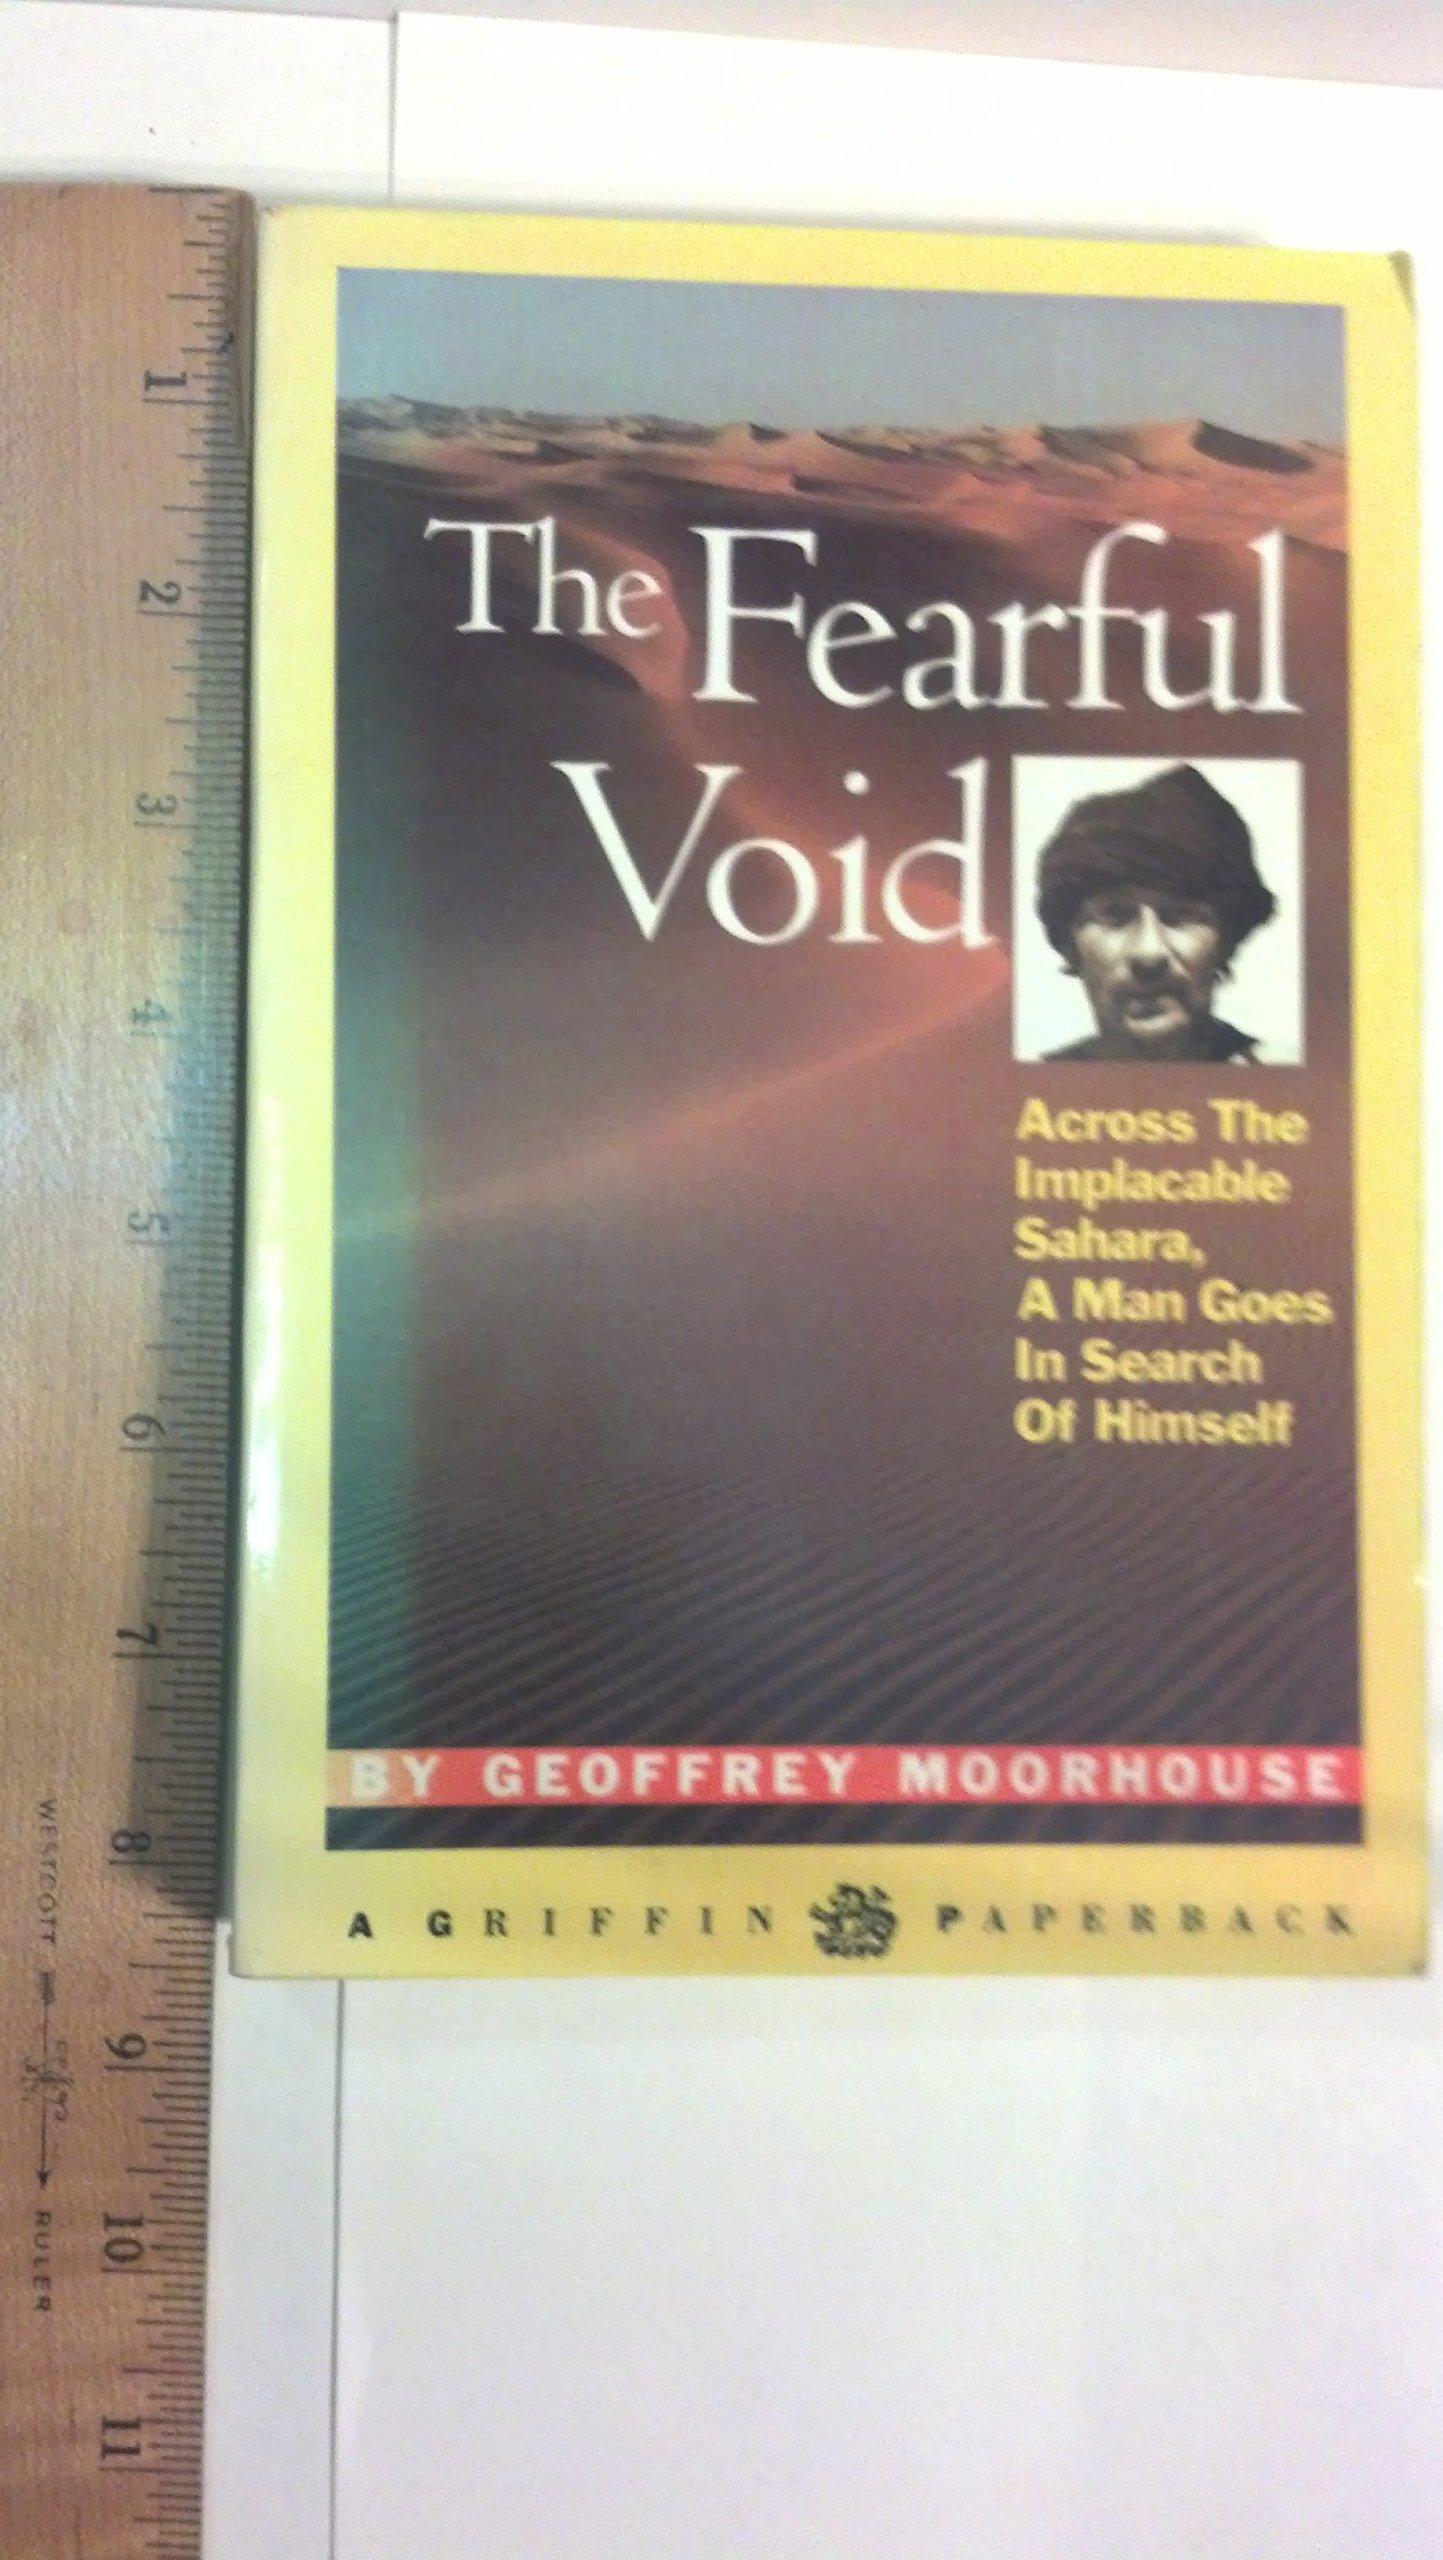 More Books by Geoffrey Moorhouse